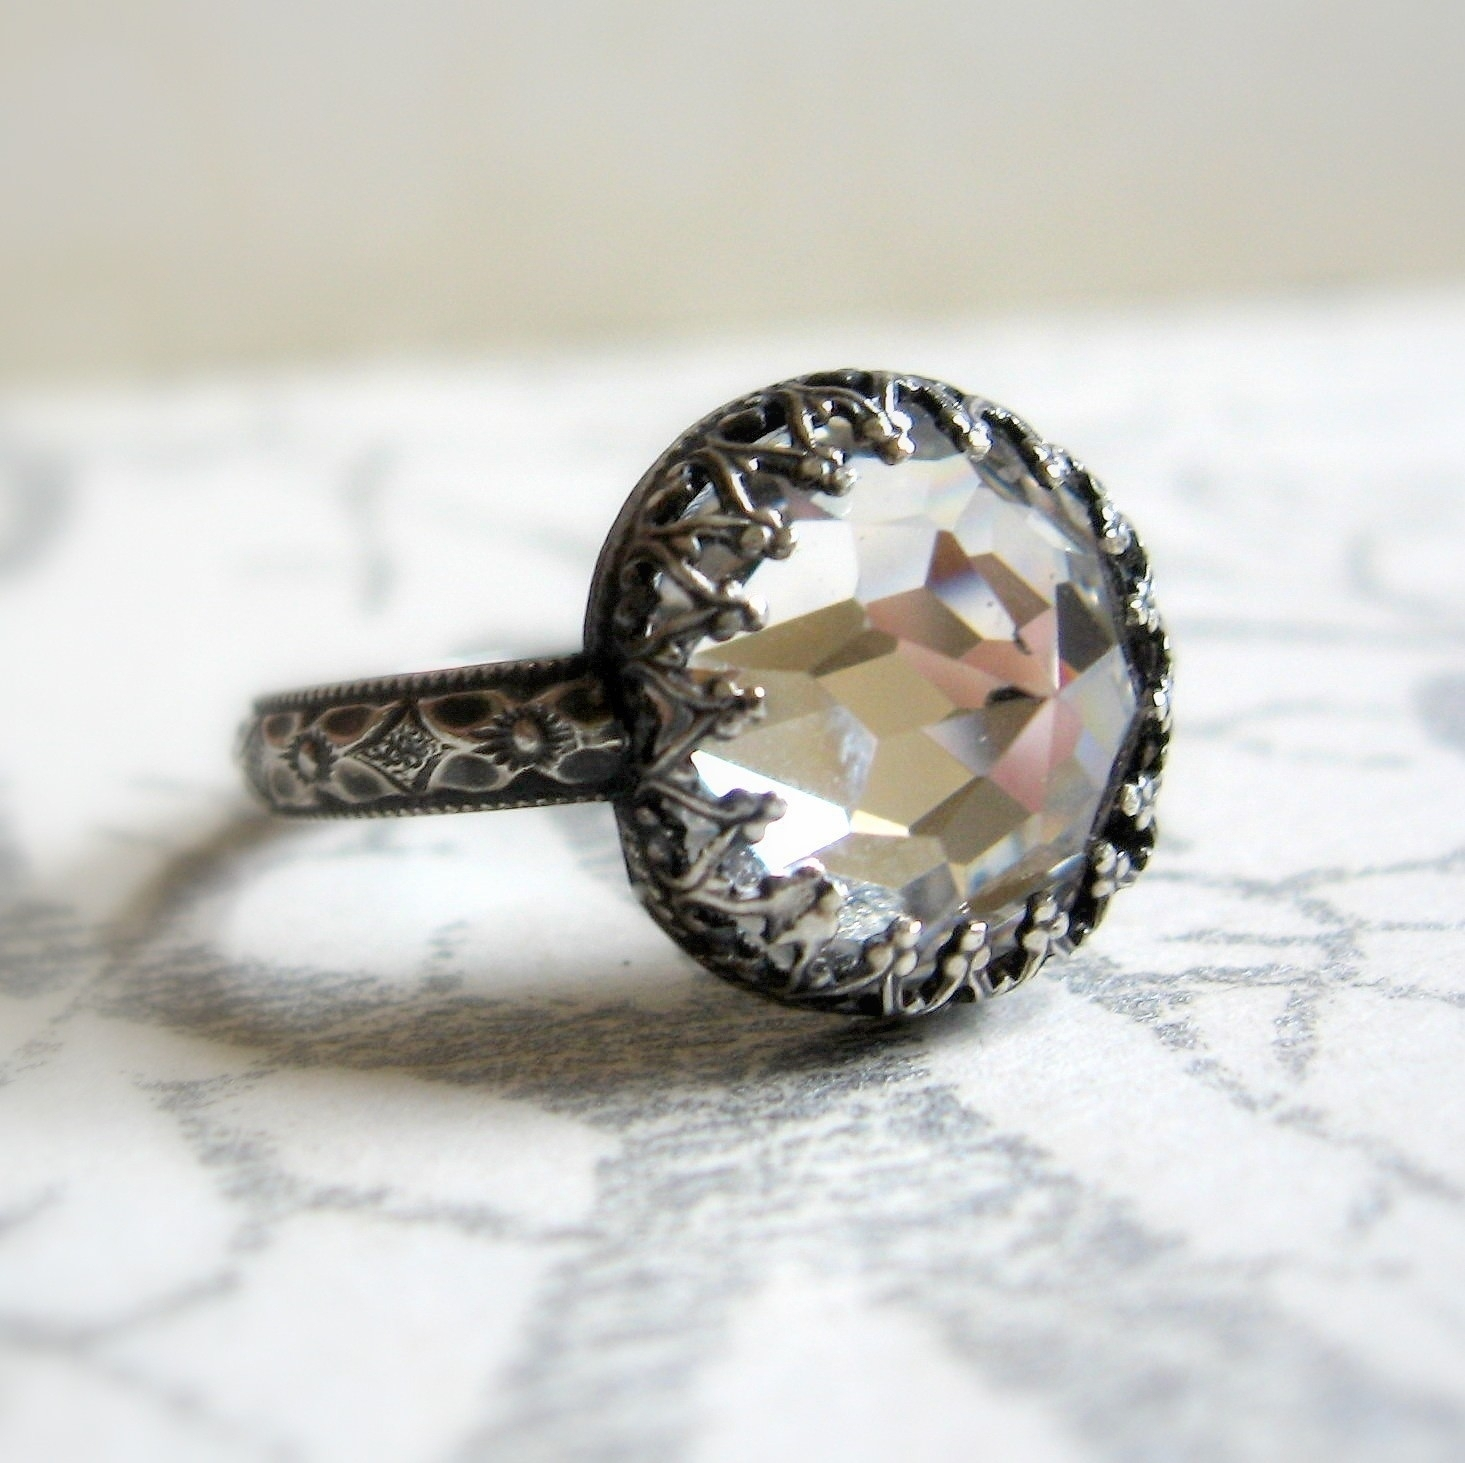 Awesome Vintage Engagement Rings Not Diamond | Vintage Wedding Ideas With Latest Vintage Style Non Diamond Engagement Rings (Gallery 4 of 15)